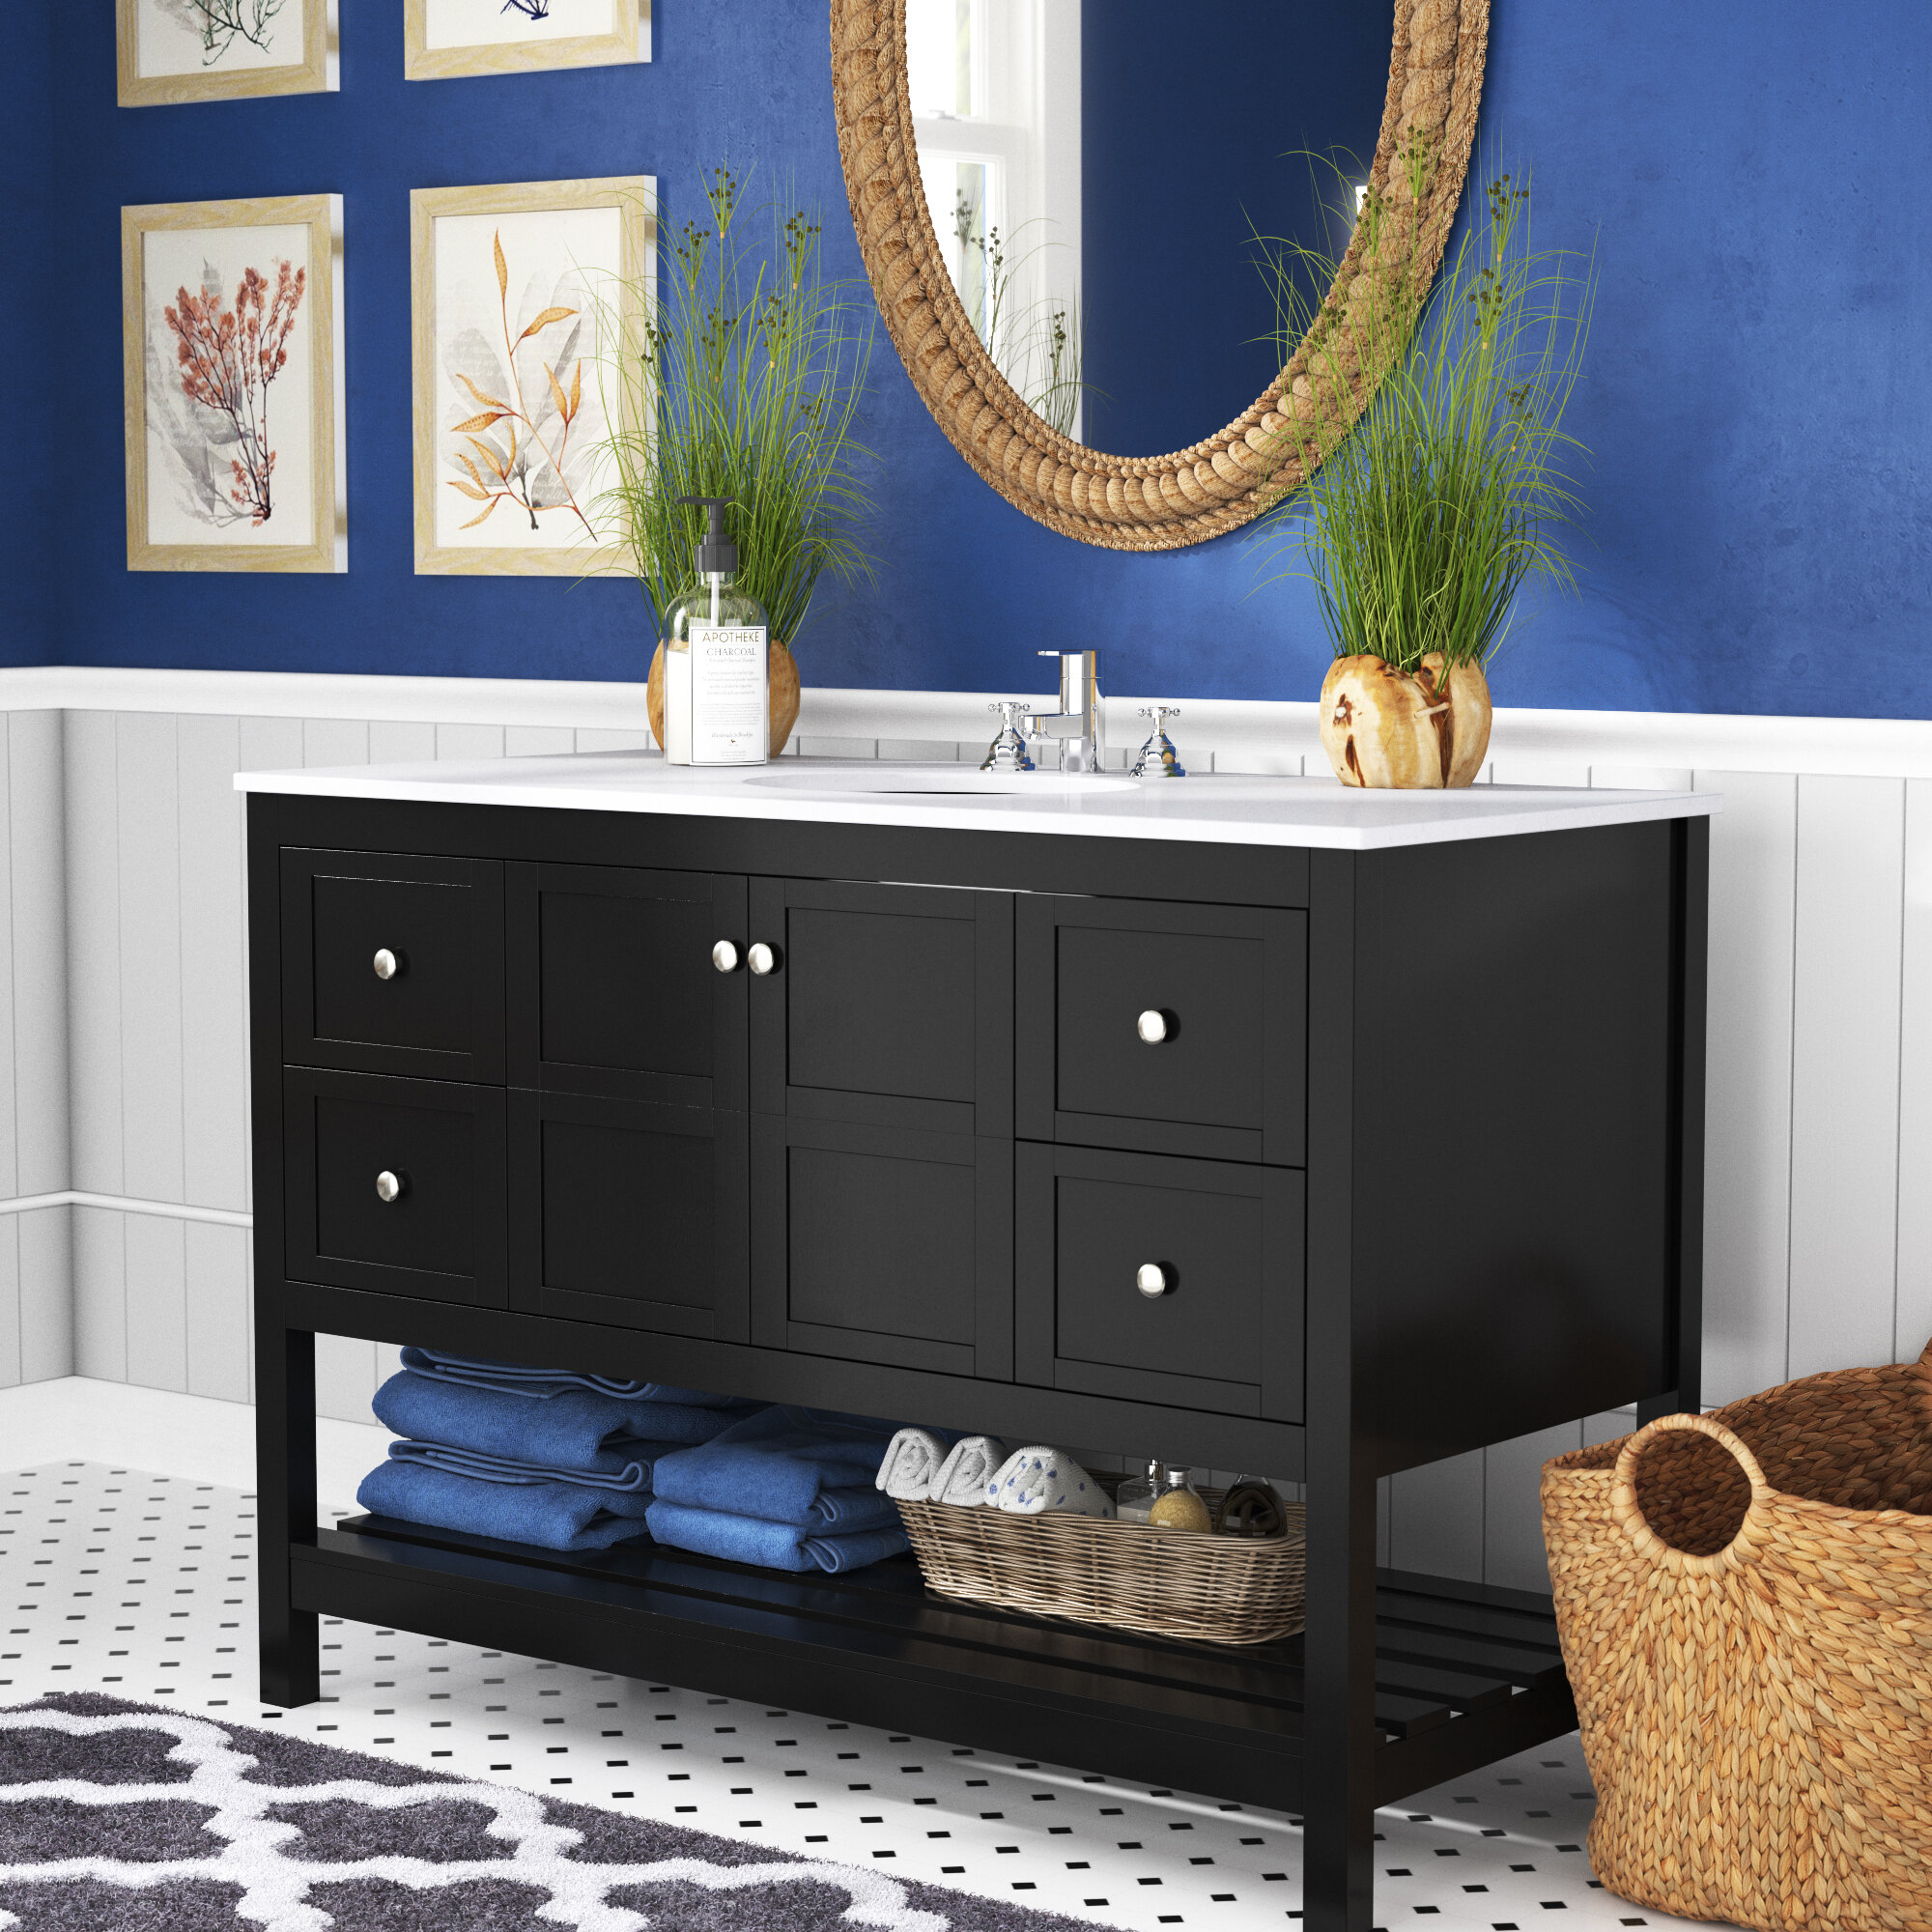 Longshore Tides Landis 48 Single Bathroom Vanity Set Reviews Wayfair